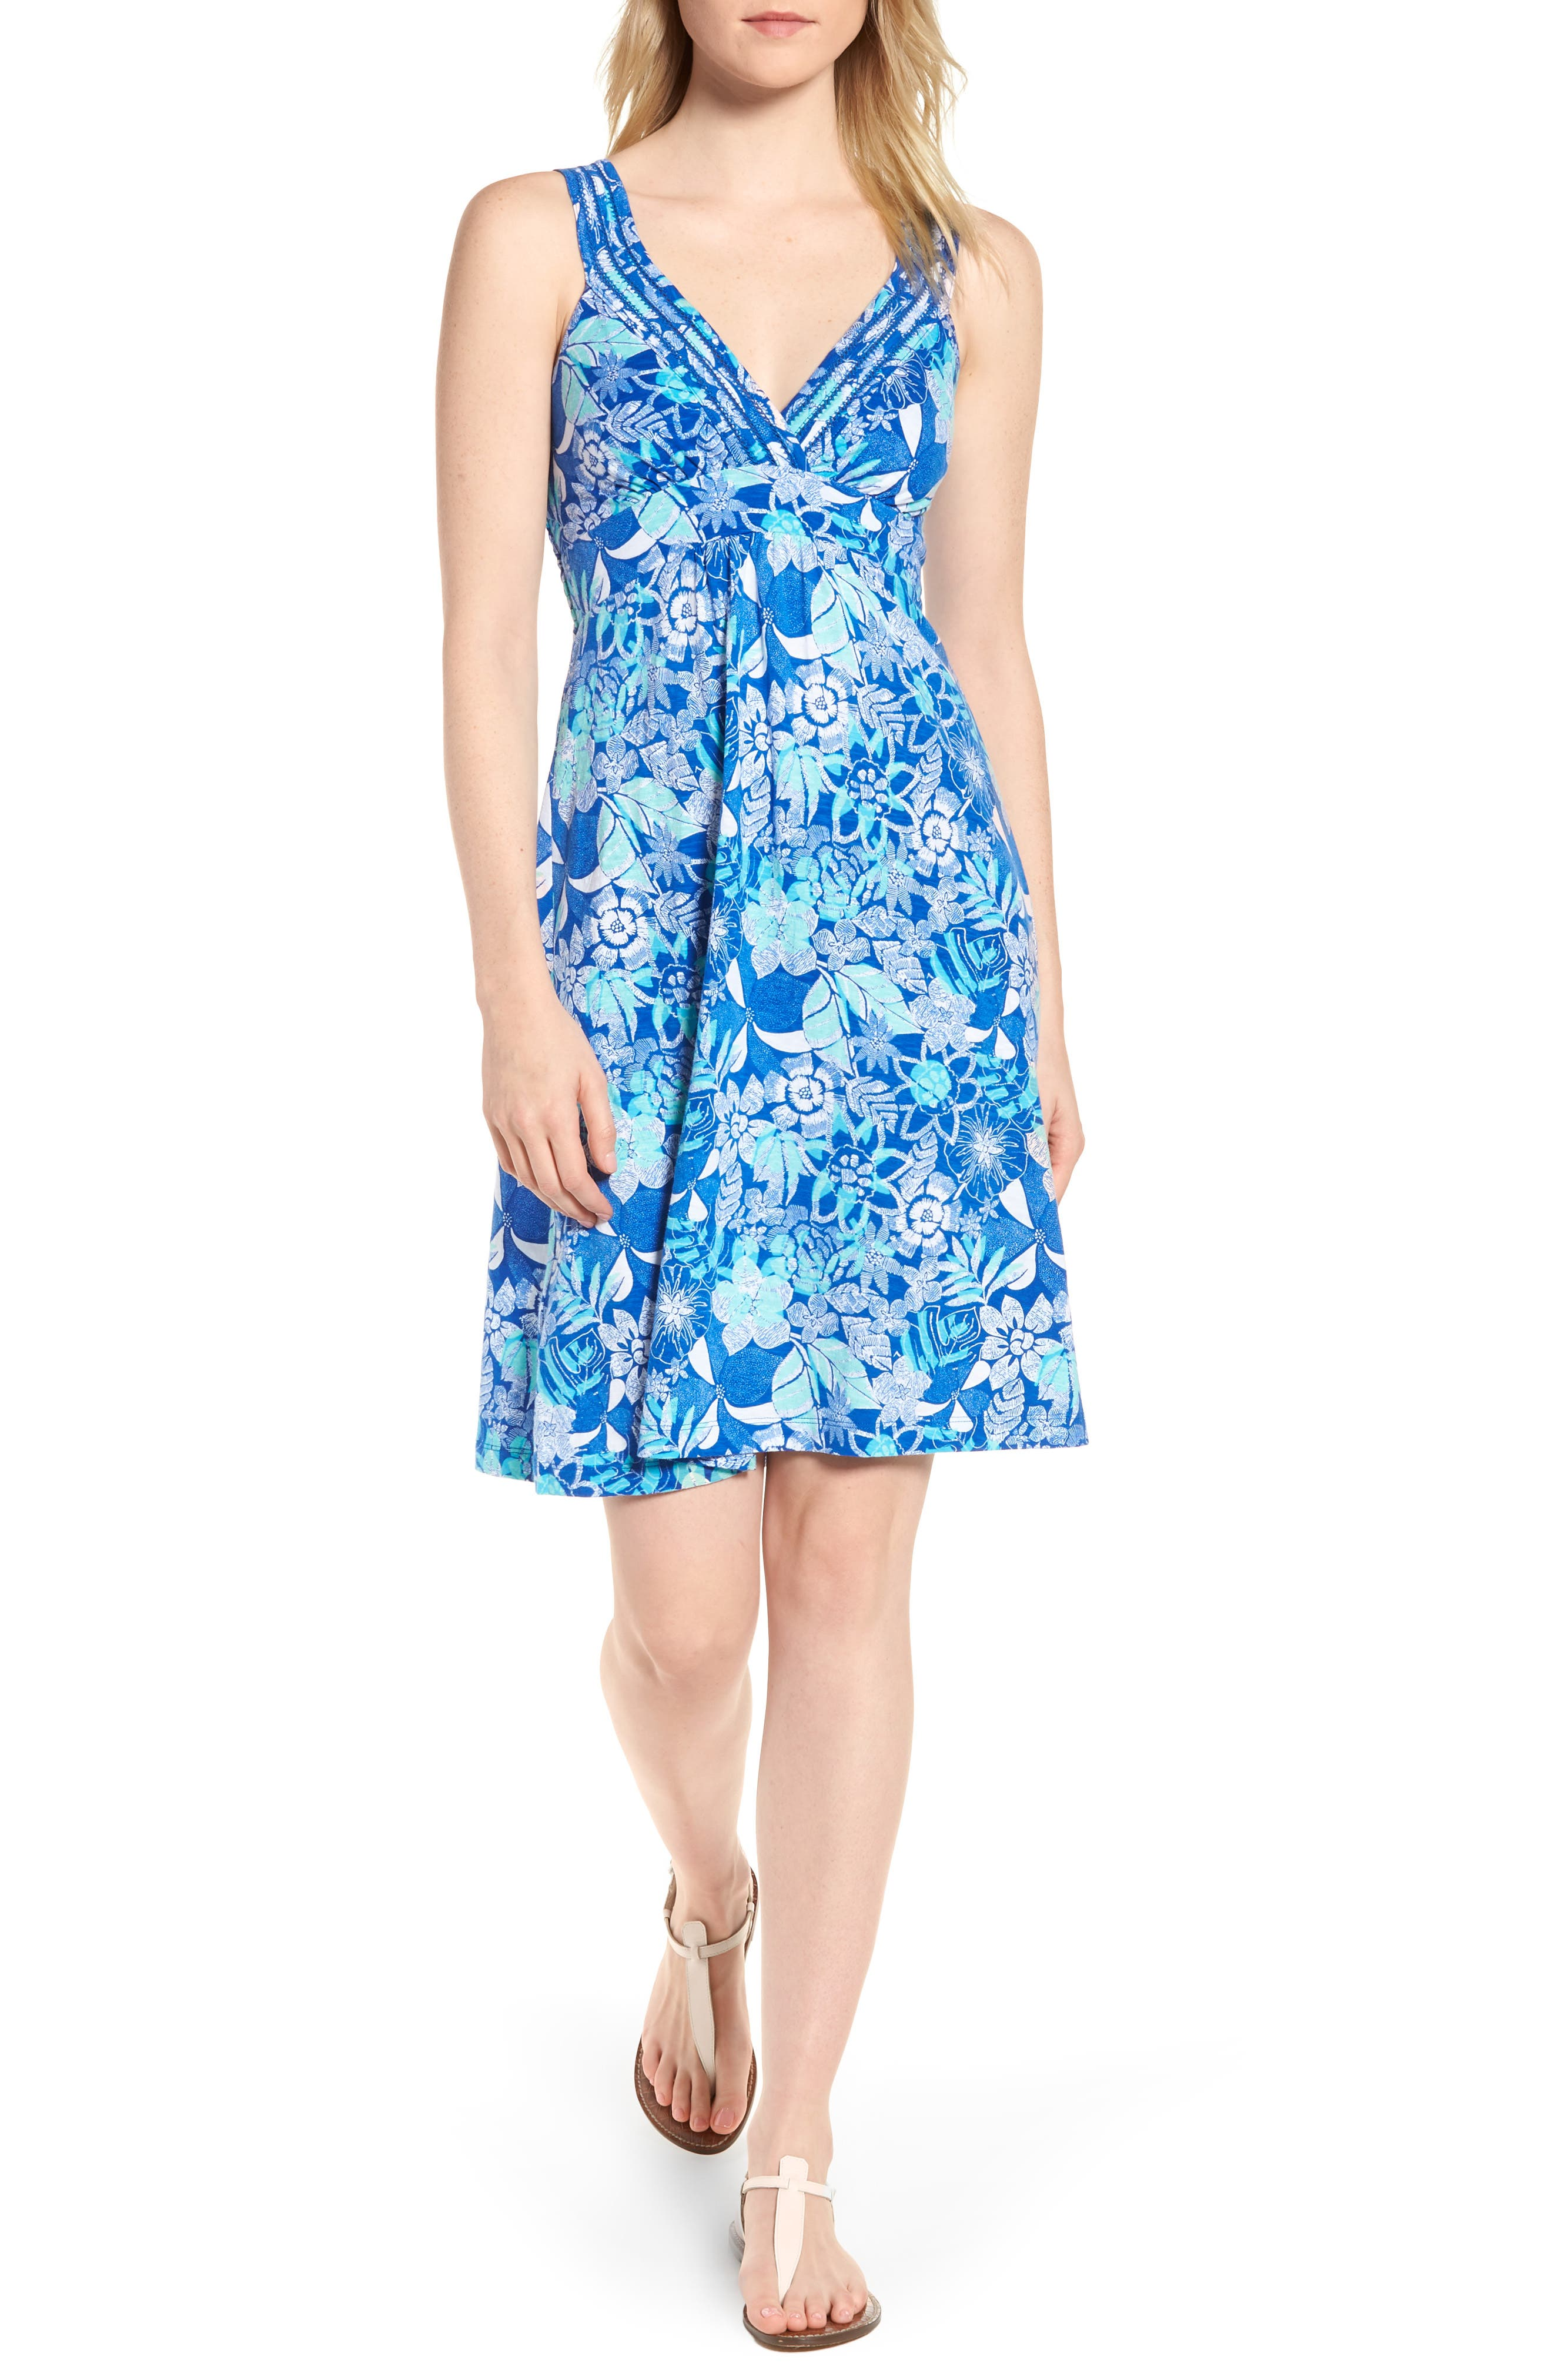 Main Image - Tommy Bahama Boardwalk Blooms A-Line Dress